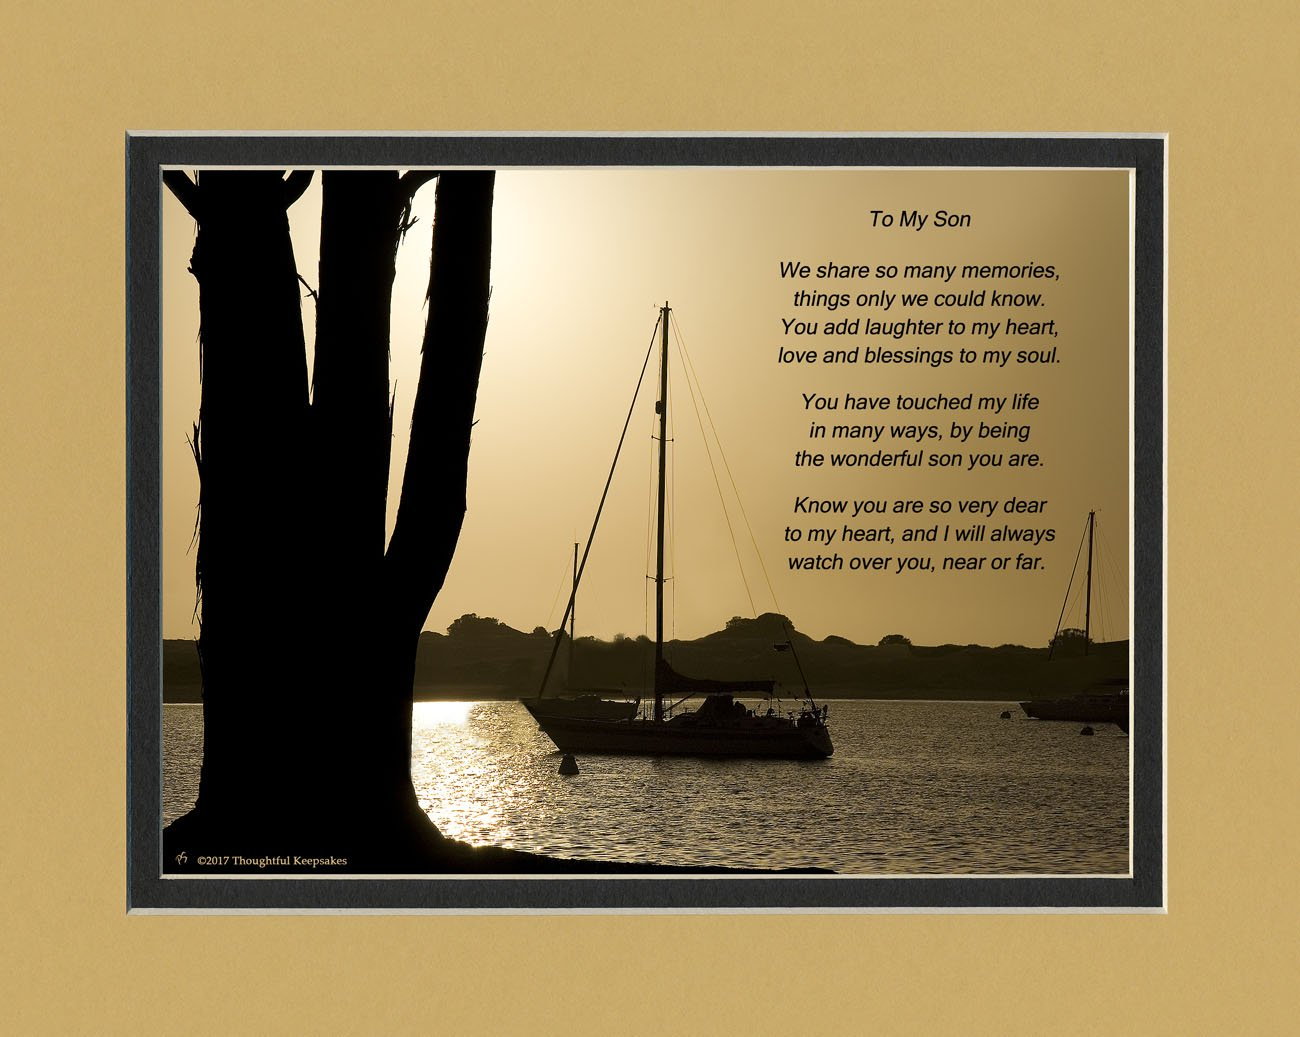 Son Gift with You Have Touched My Life in Many Ways, By Being the Wonderful Son You Are Poem. Boats Photo, 8x10 Matted. Special Birthday or for Son.